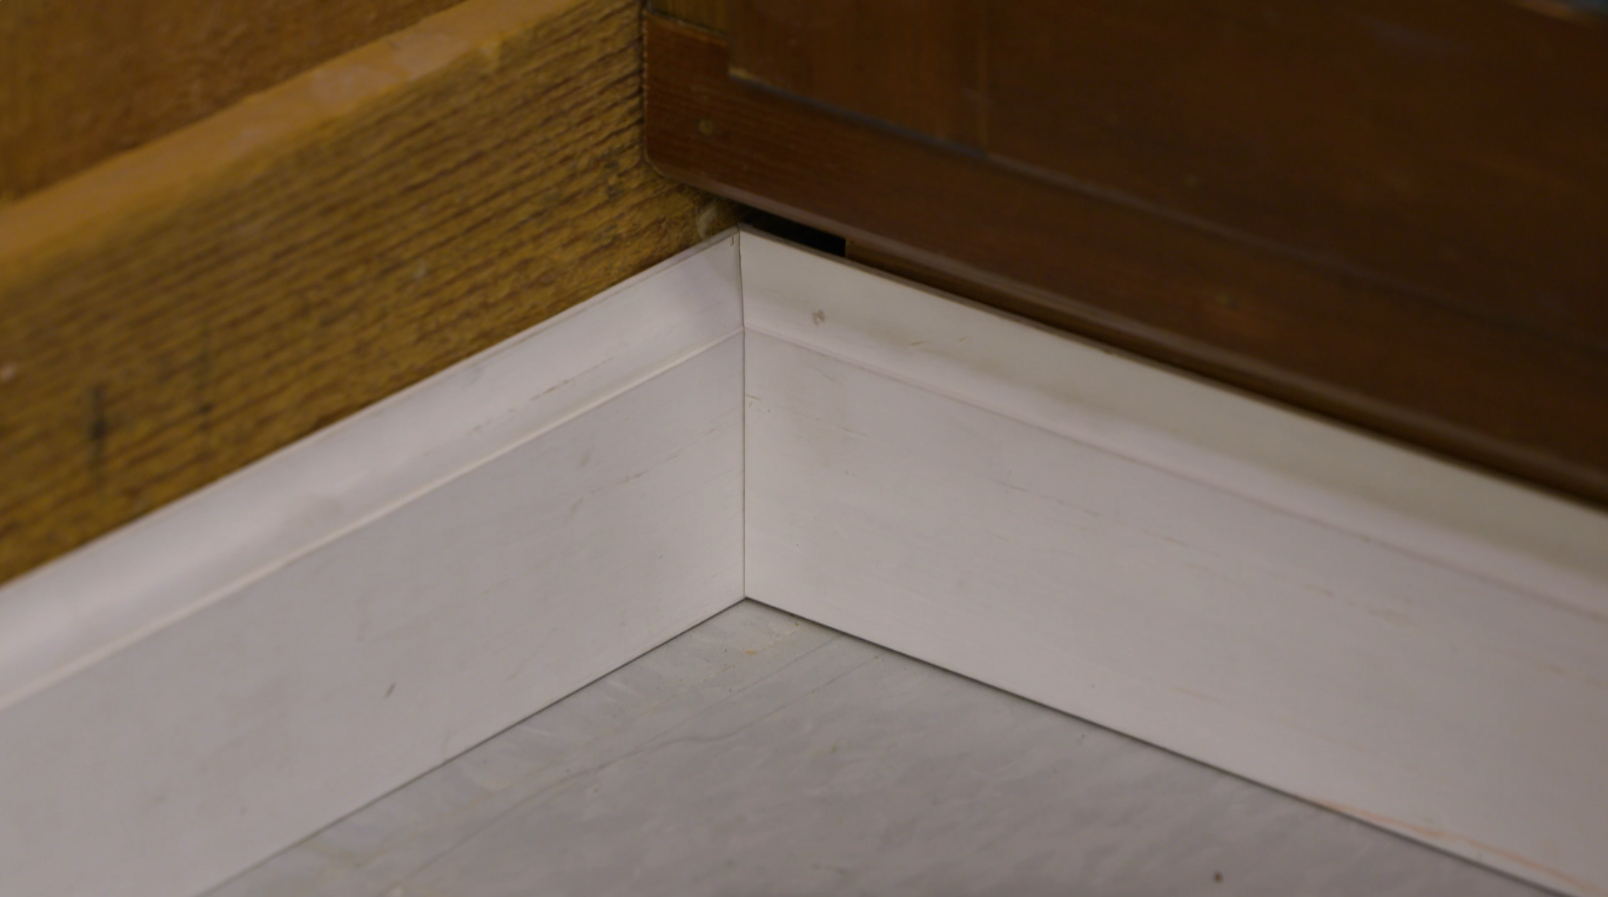 Coping Joints for Baseboards in Your Old Home